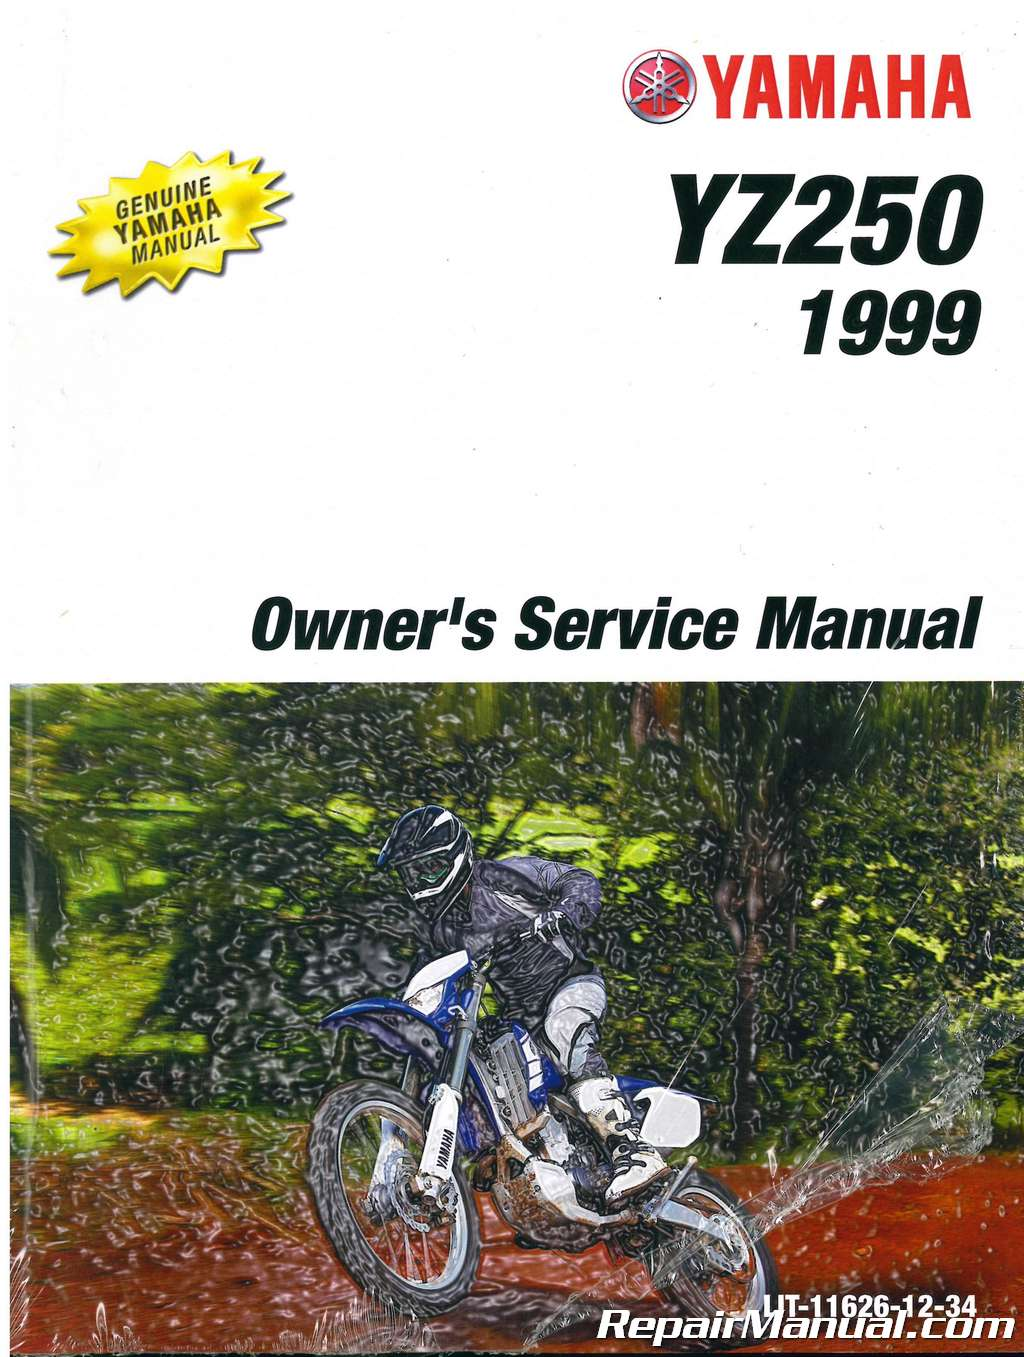 1999 Yamaha Yz250 Motorcycle Owners Service Manual